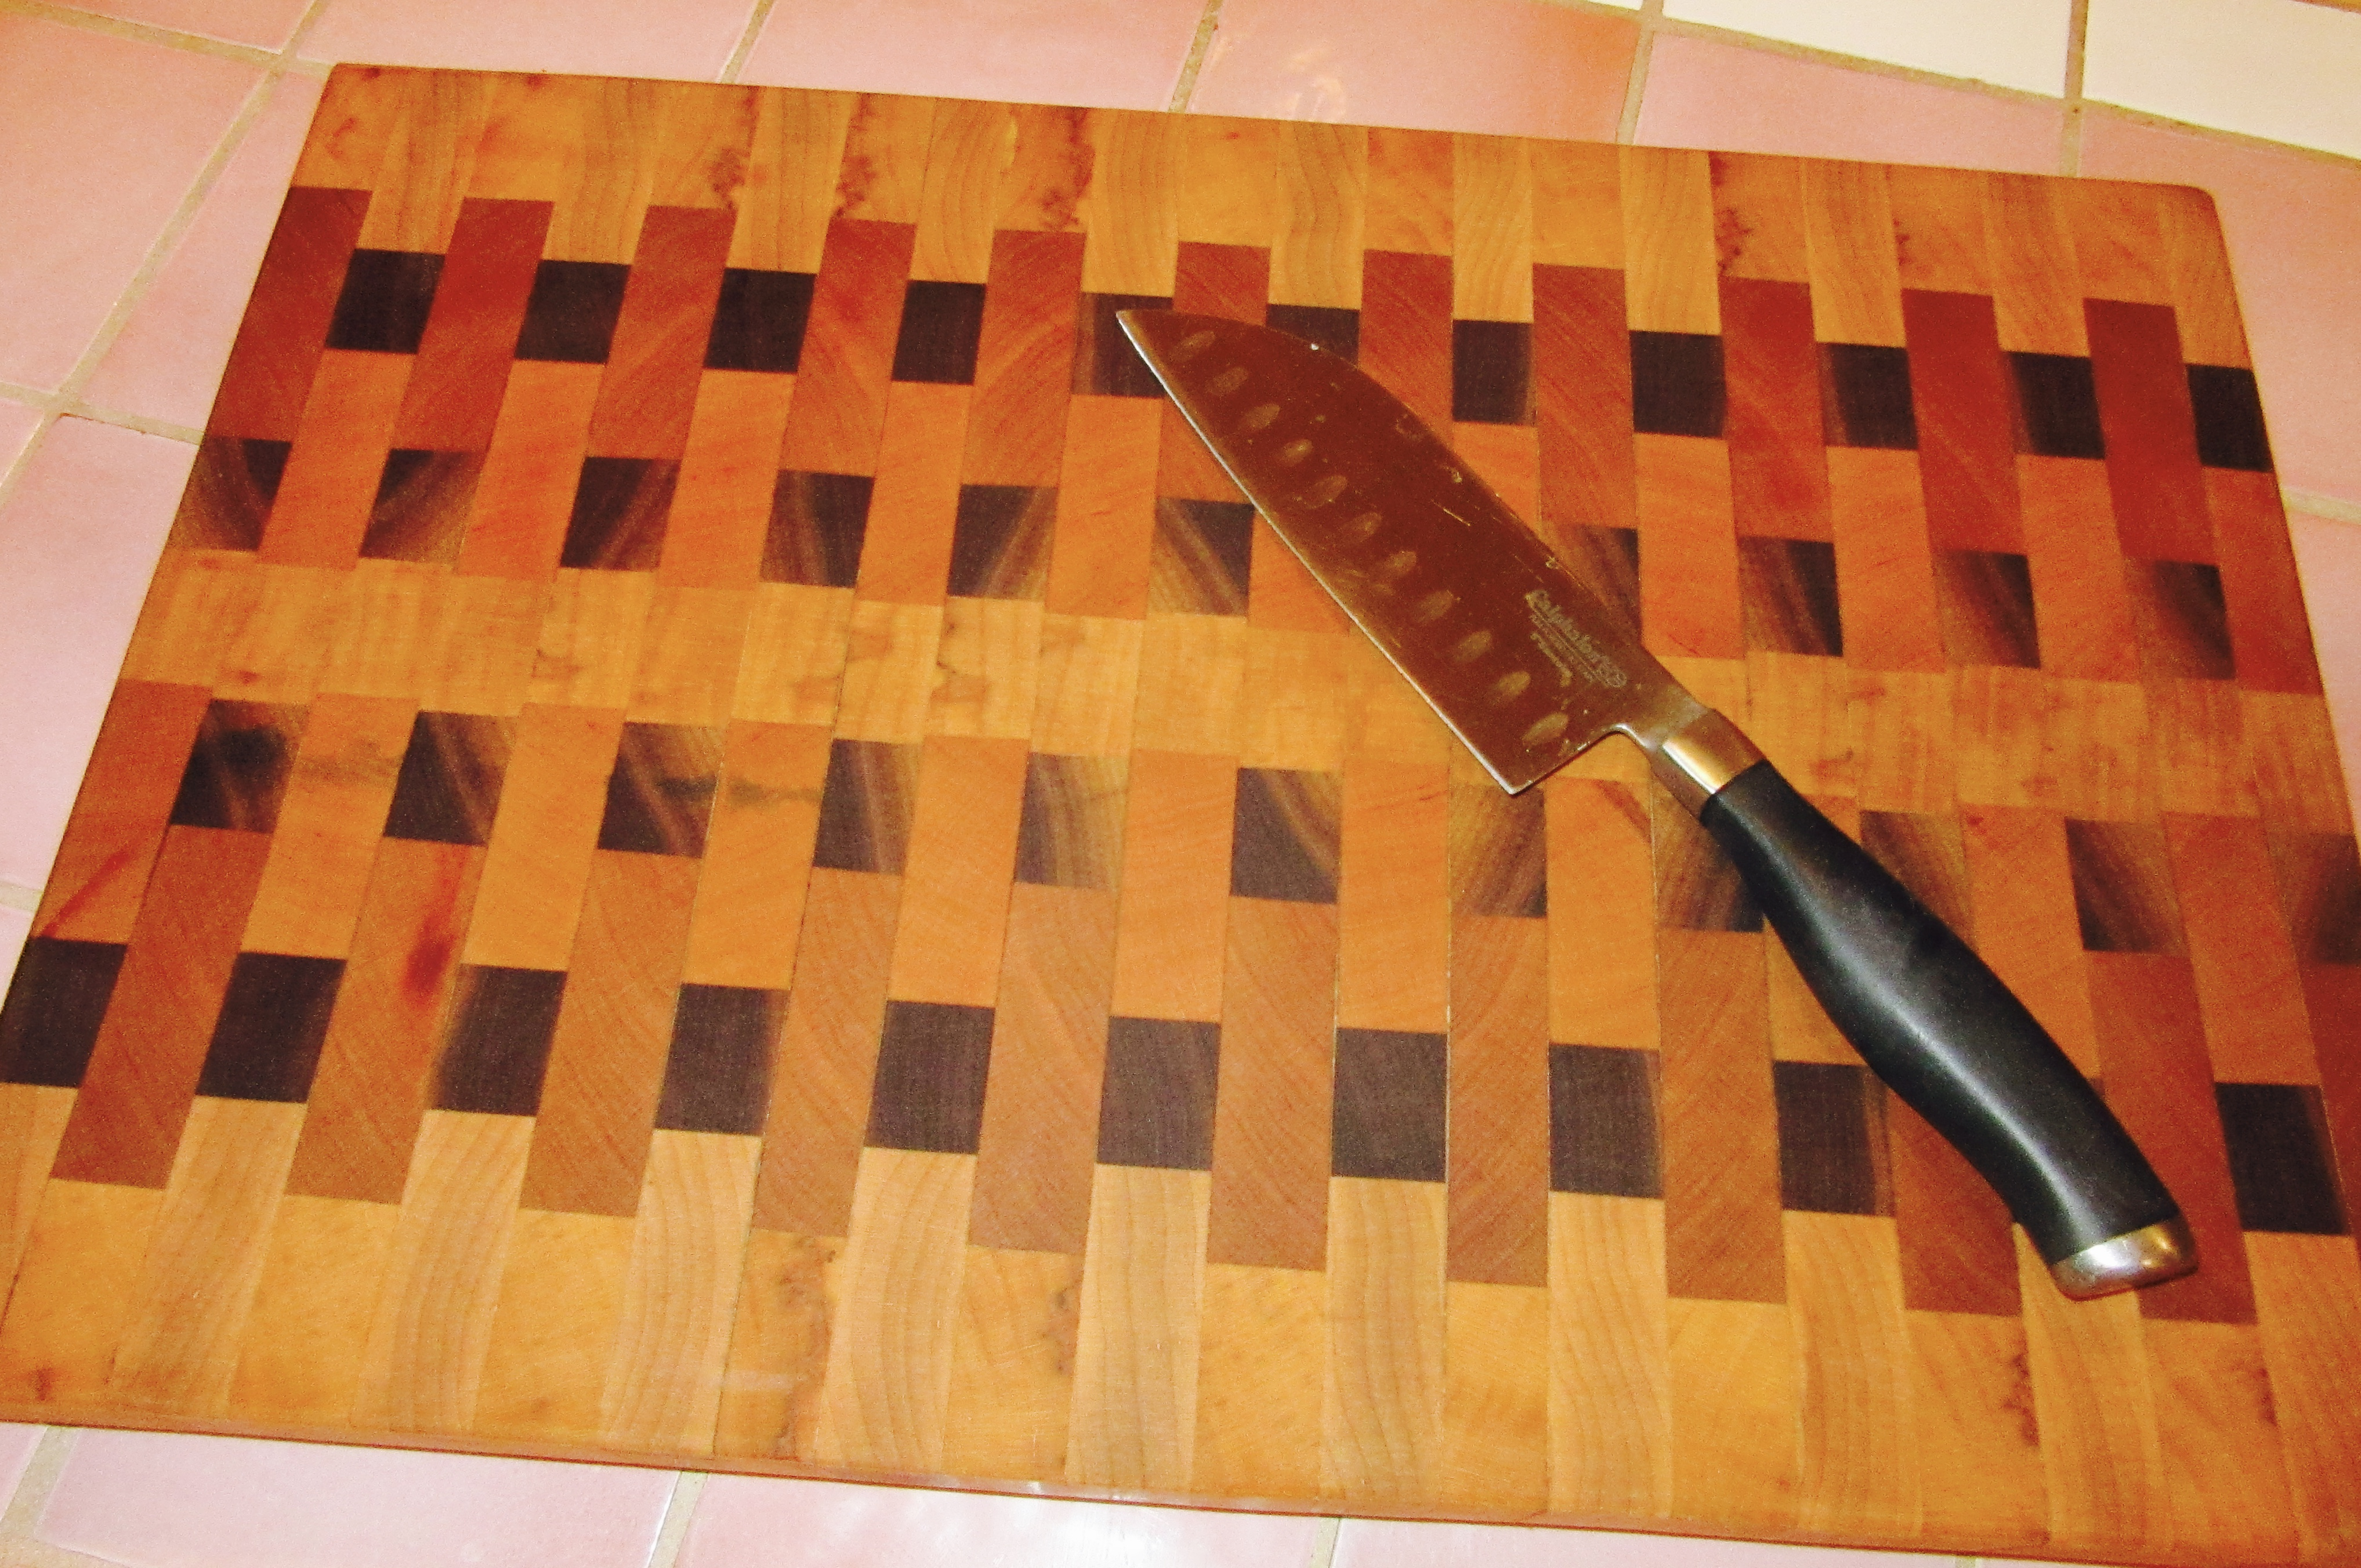 Favorite Kitchen Gifts: Love My Cutting Boards